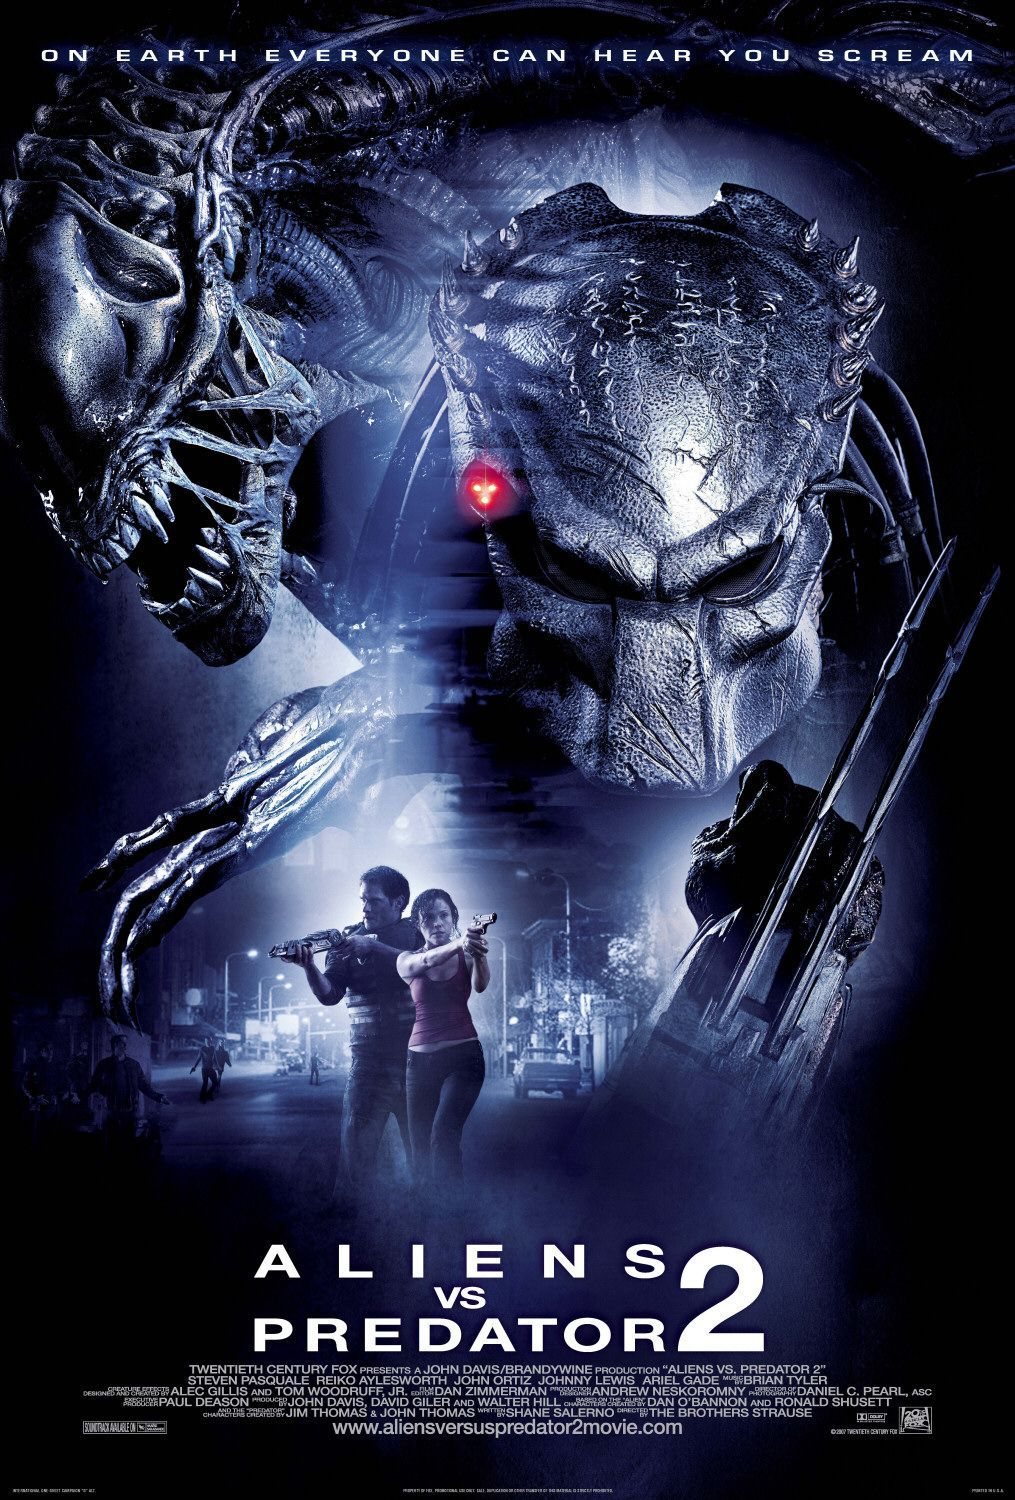 Alien vs Predator 2 - Requiem - AVPR